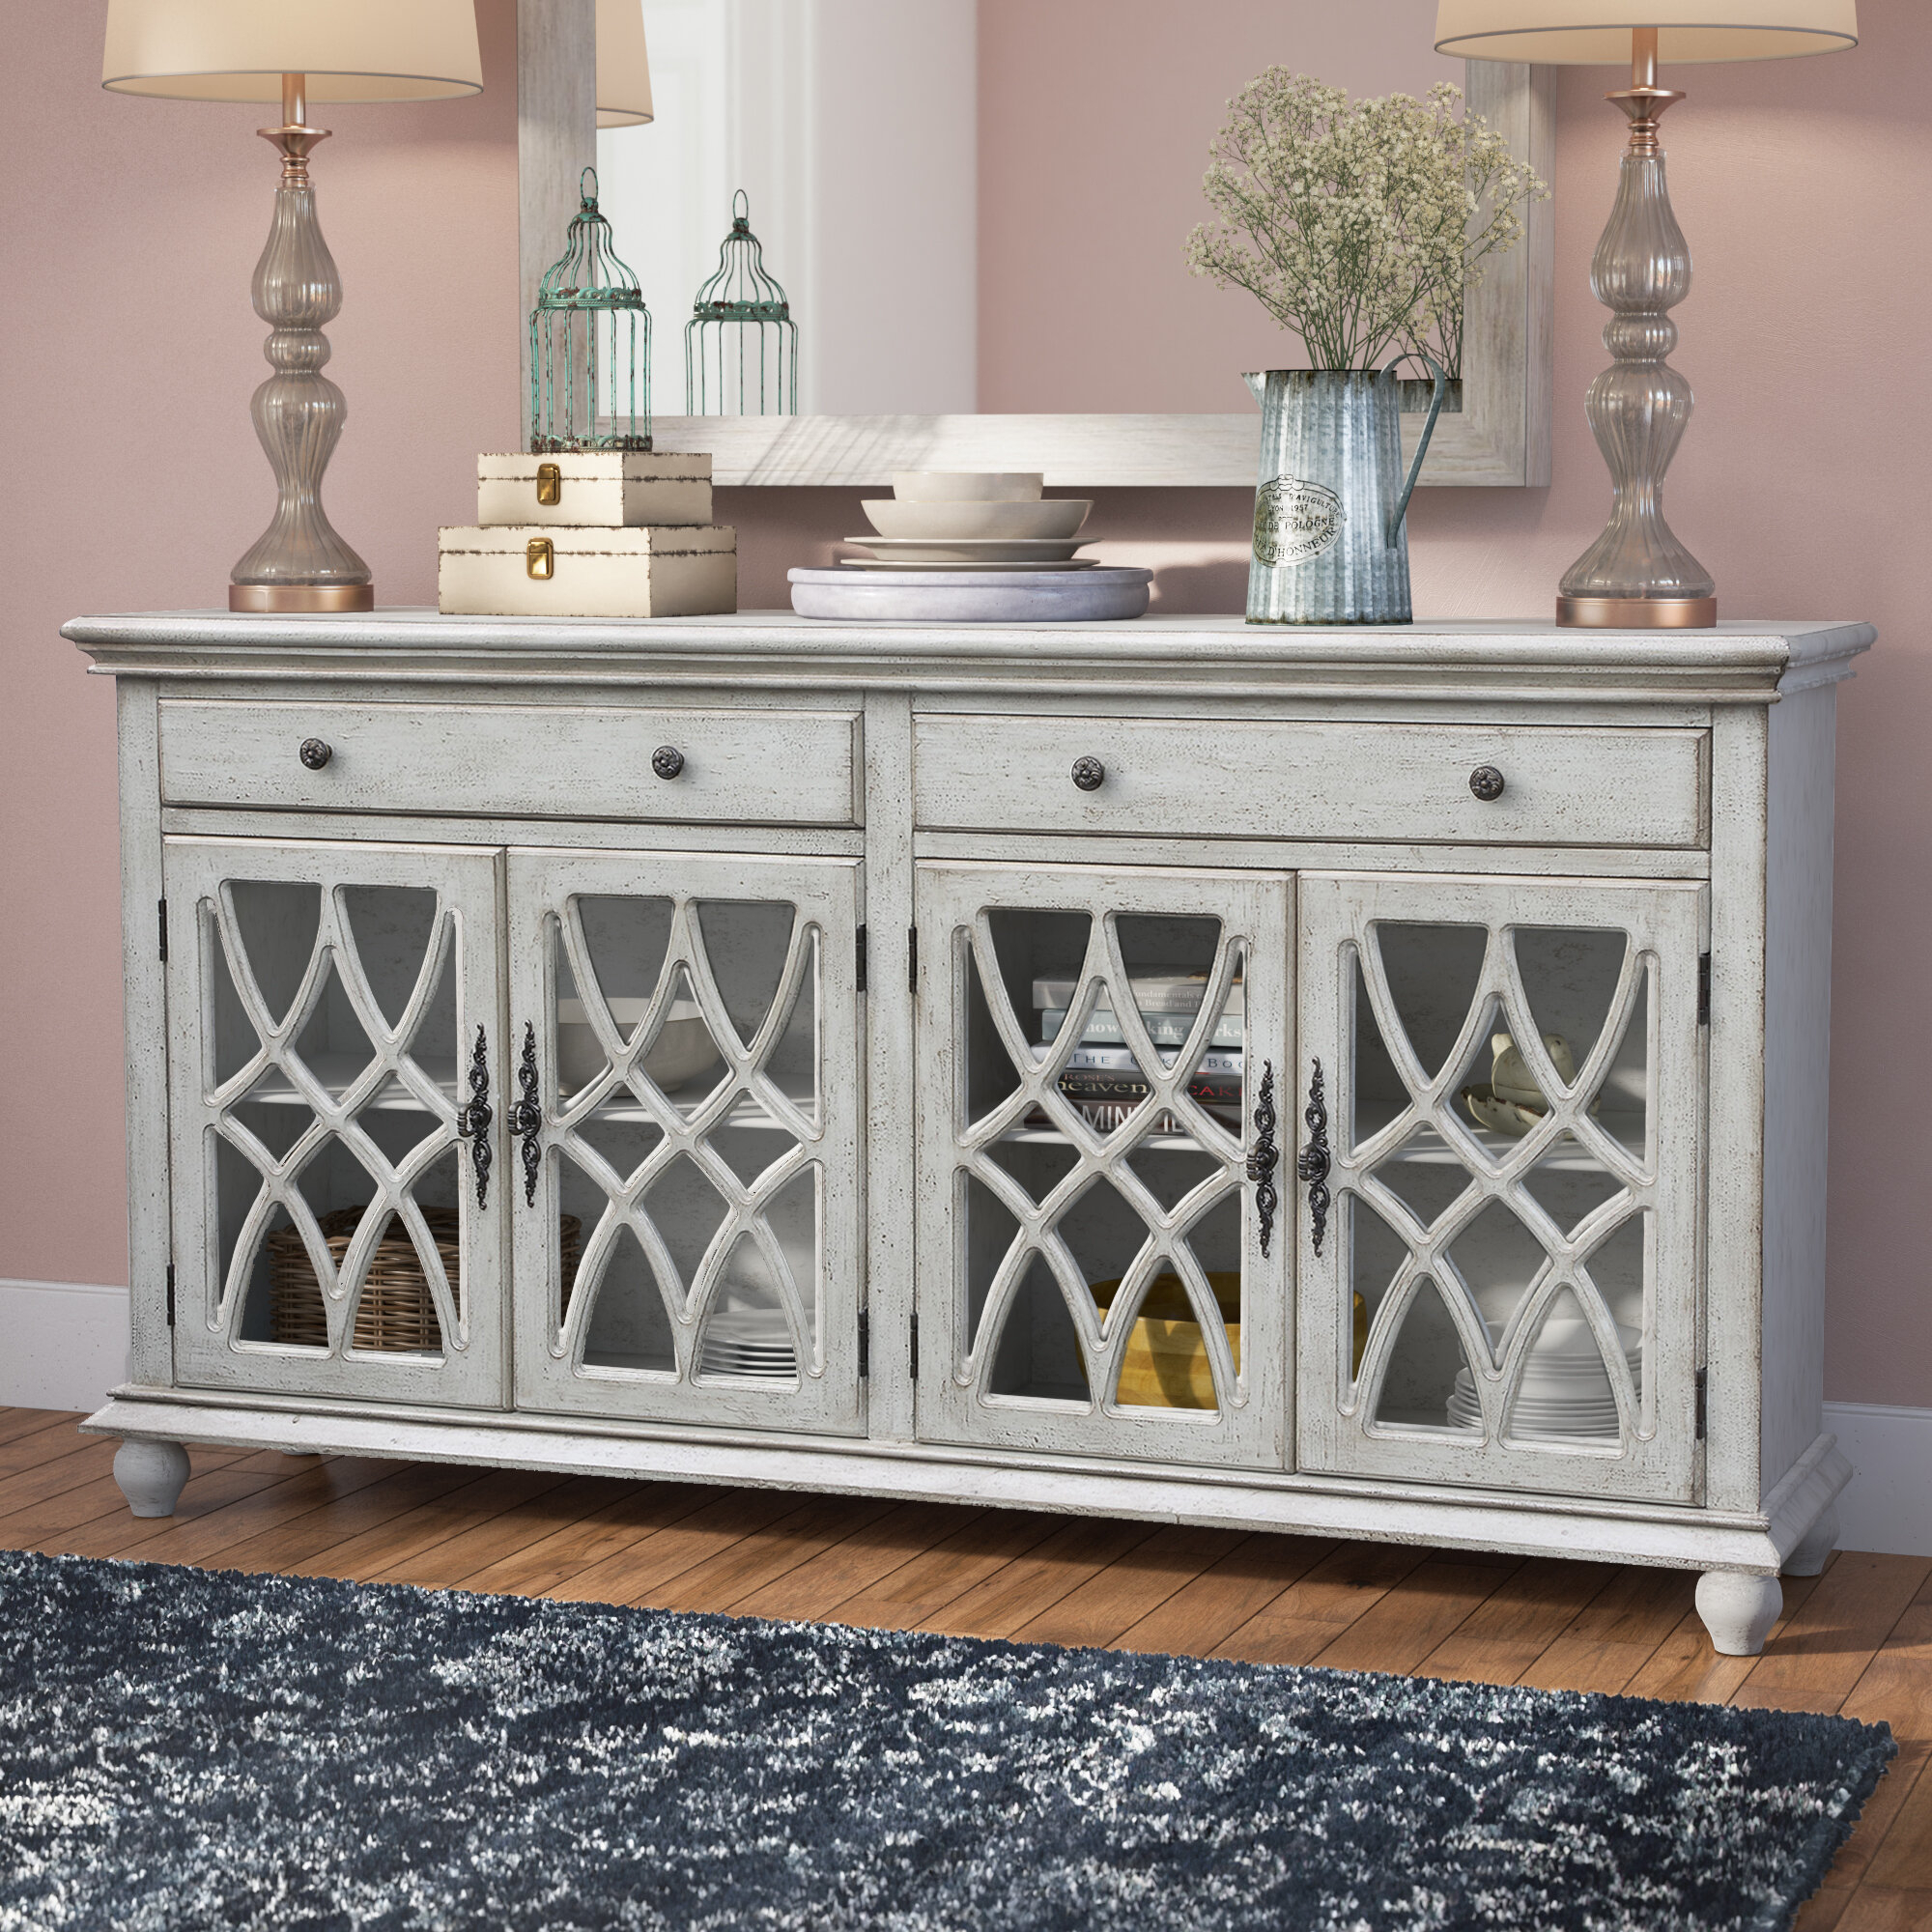 Raquette Sideboard Intended For Tott And Eling Sideboards (Gallery 10 of 30)